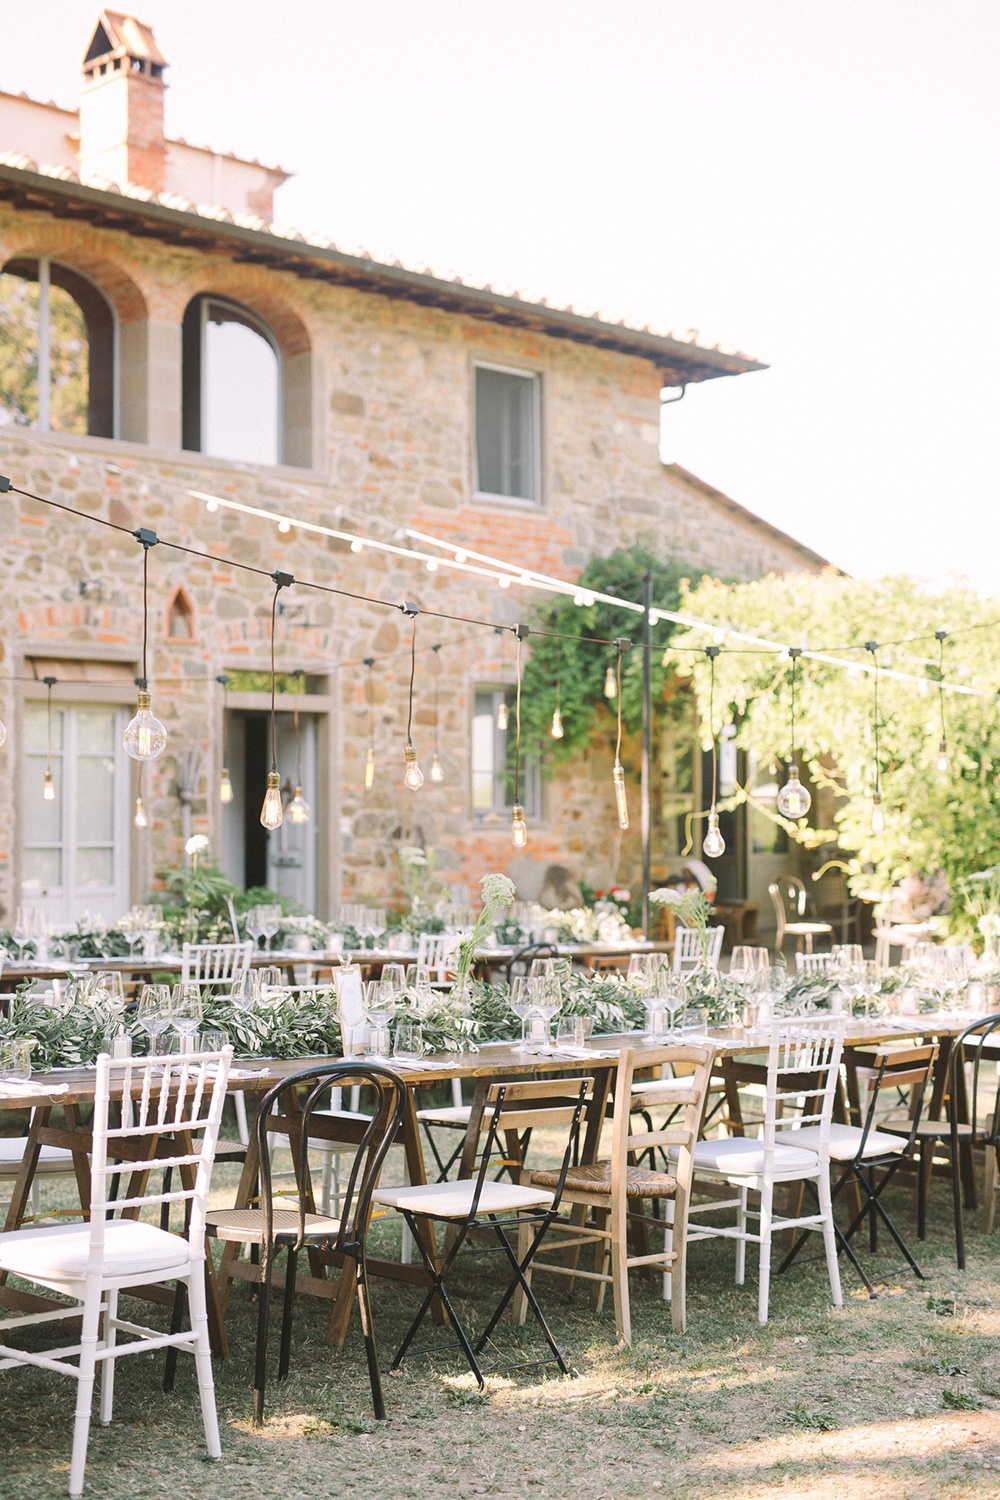 A Tuscan Dream Wedding Come True Photo By Nastja Kovacec Http://ruffledblog.com/a Tuscan Dream Wedding Come True